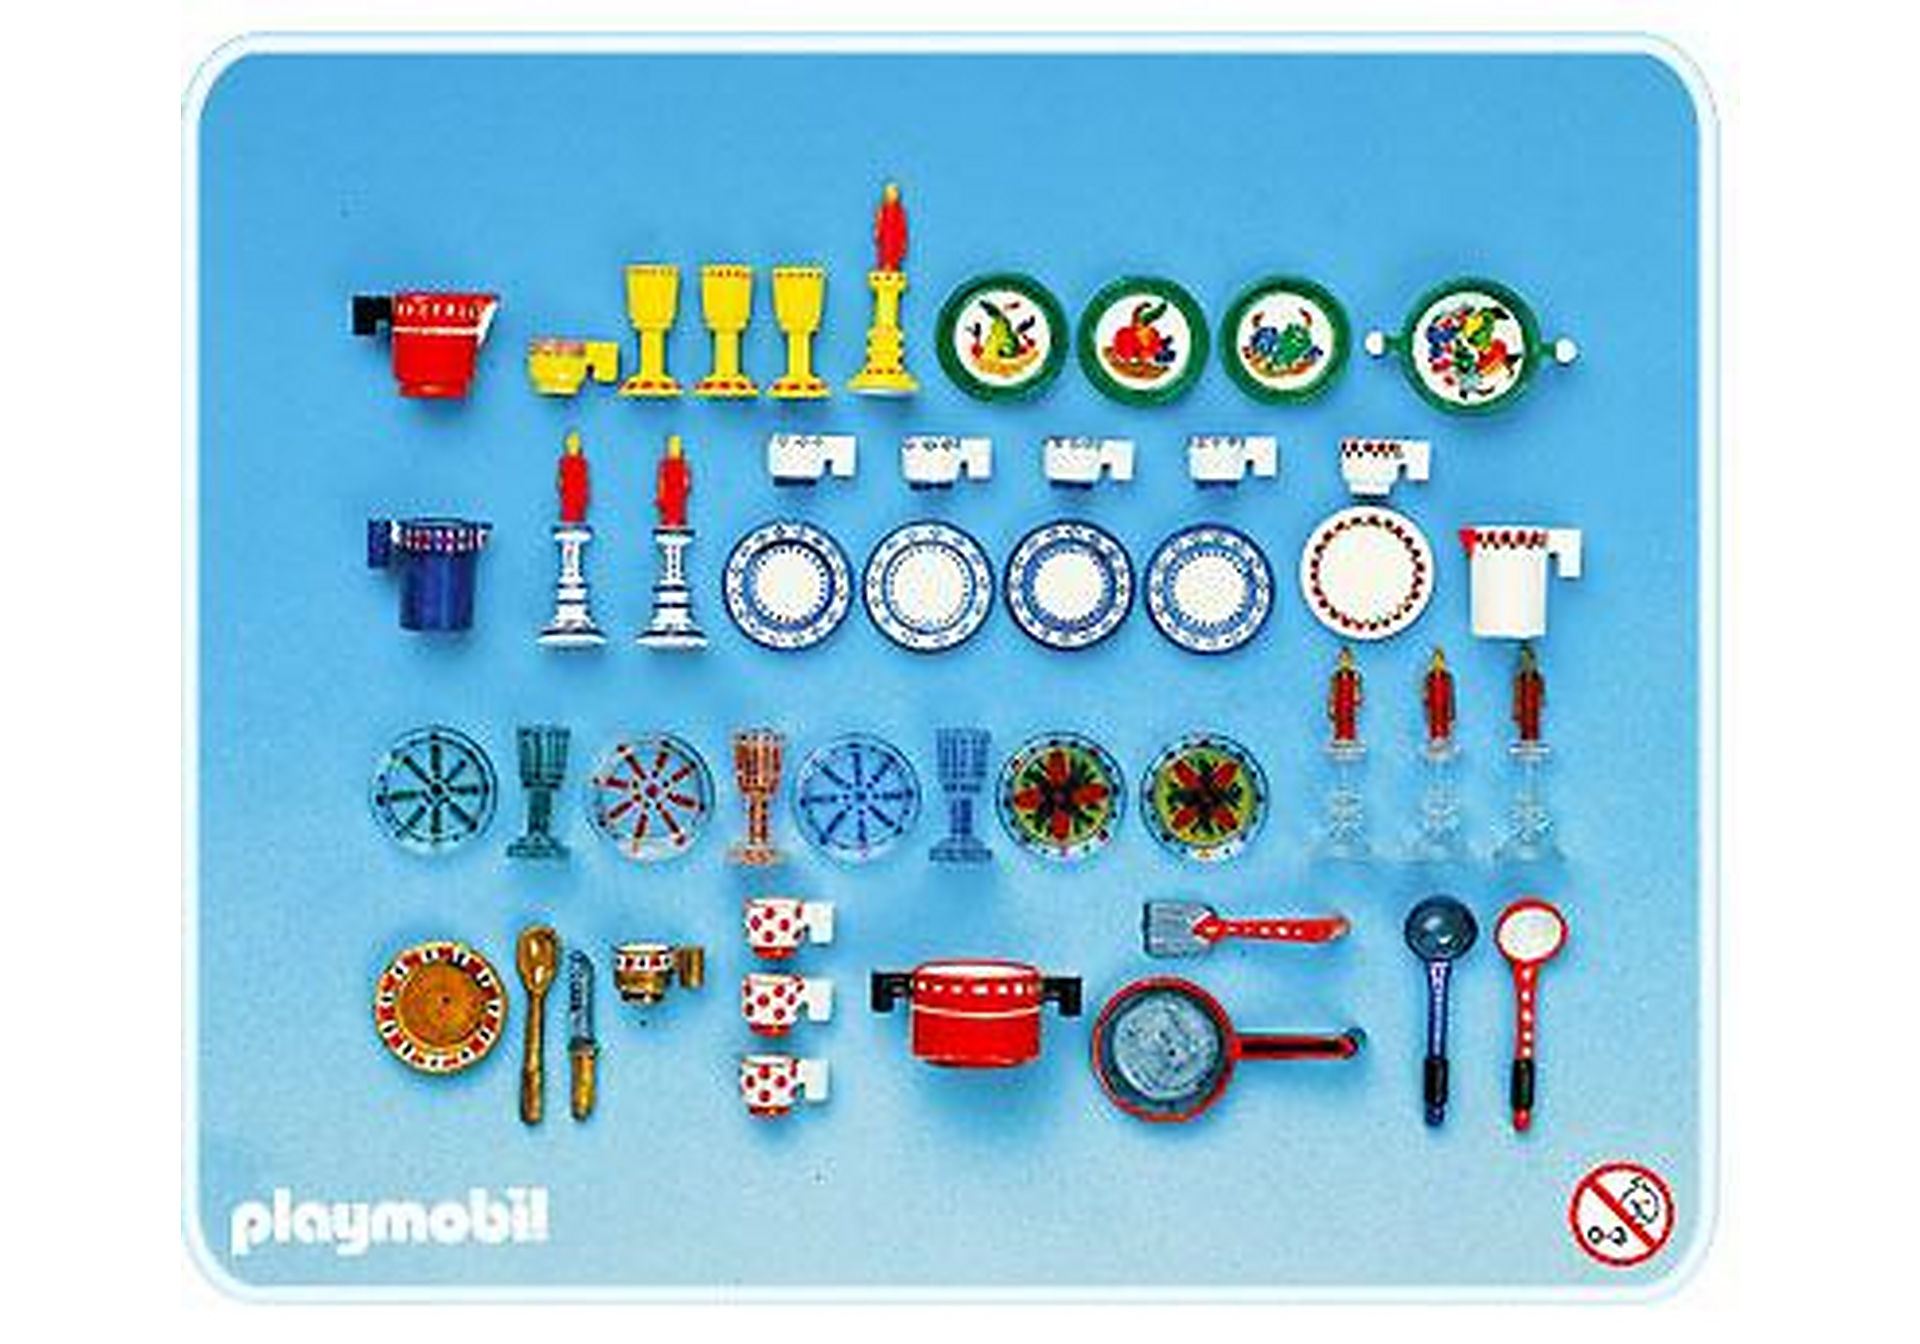 http://media.playmobil.com/i/playmobil/3630-A_product_detail/Vaisselle